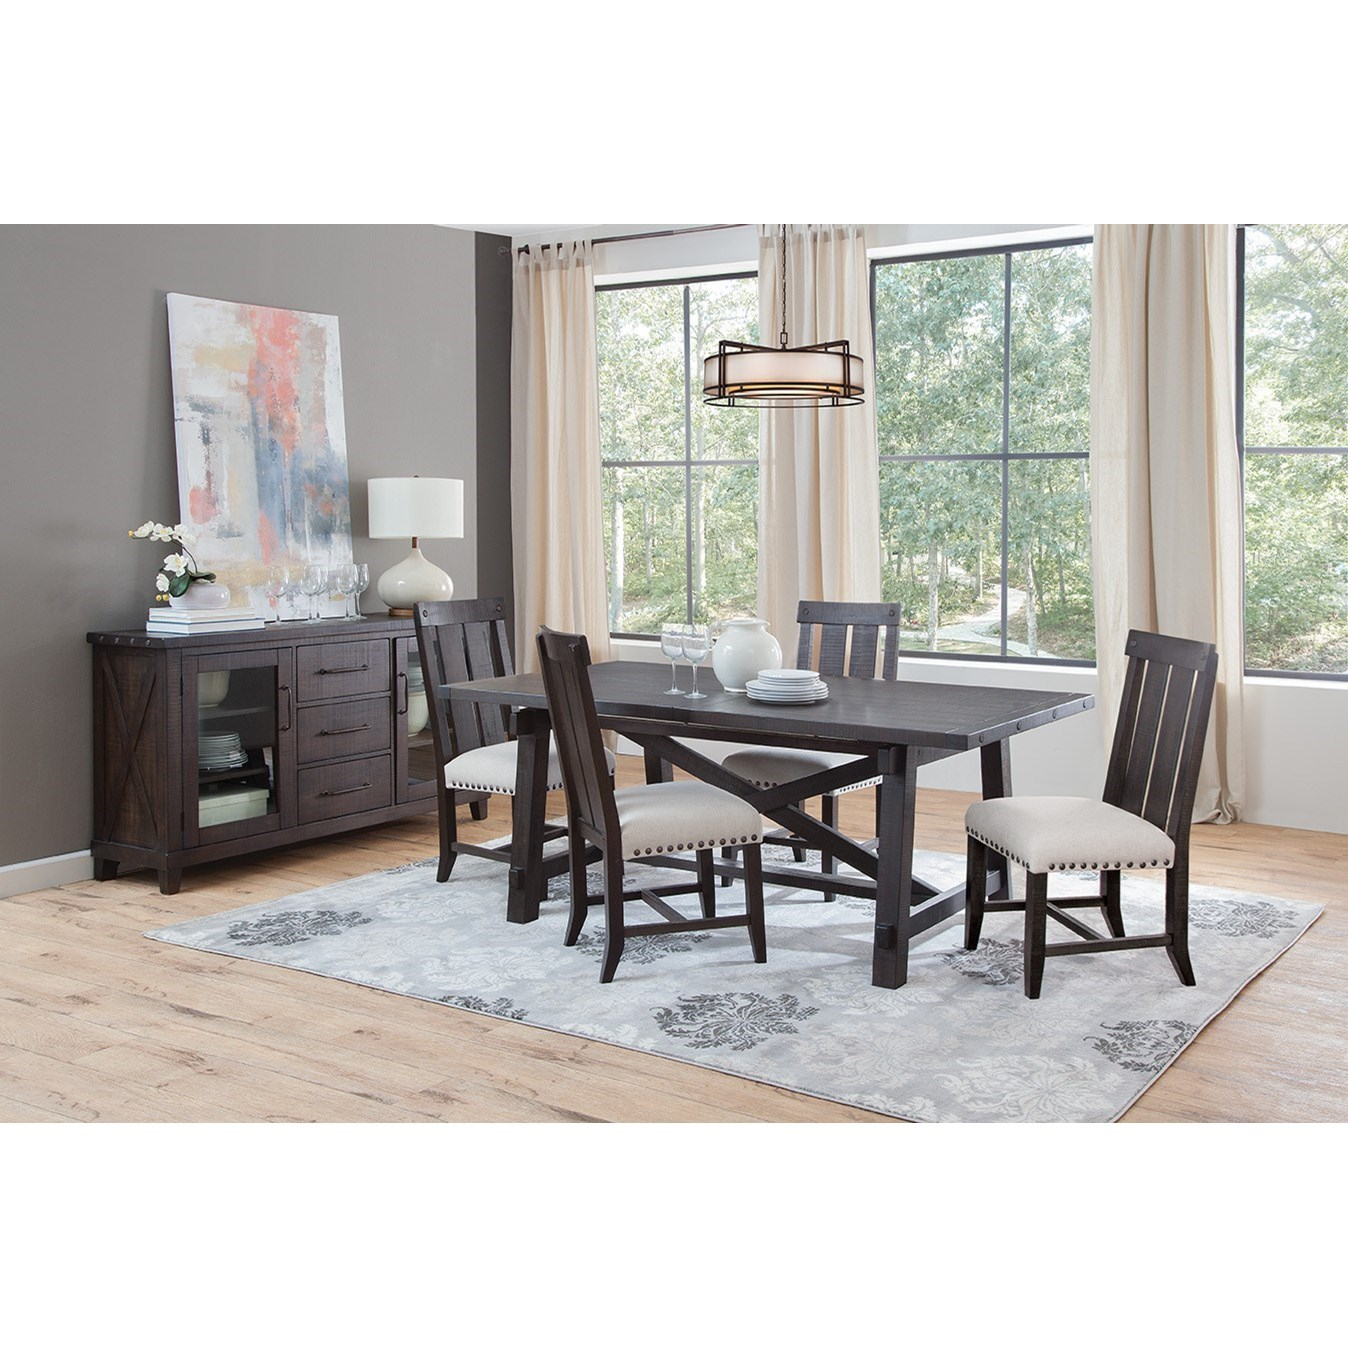 Vivian Casual Dining Room Group by Sunny Designs at Suburban Furniture